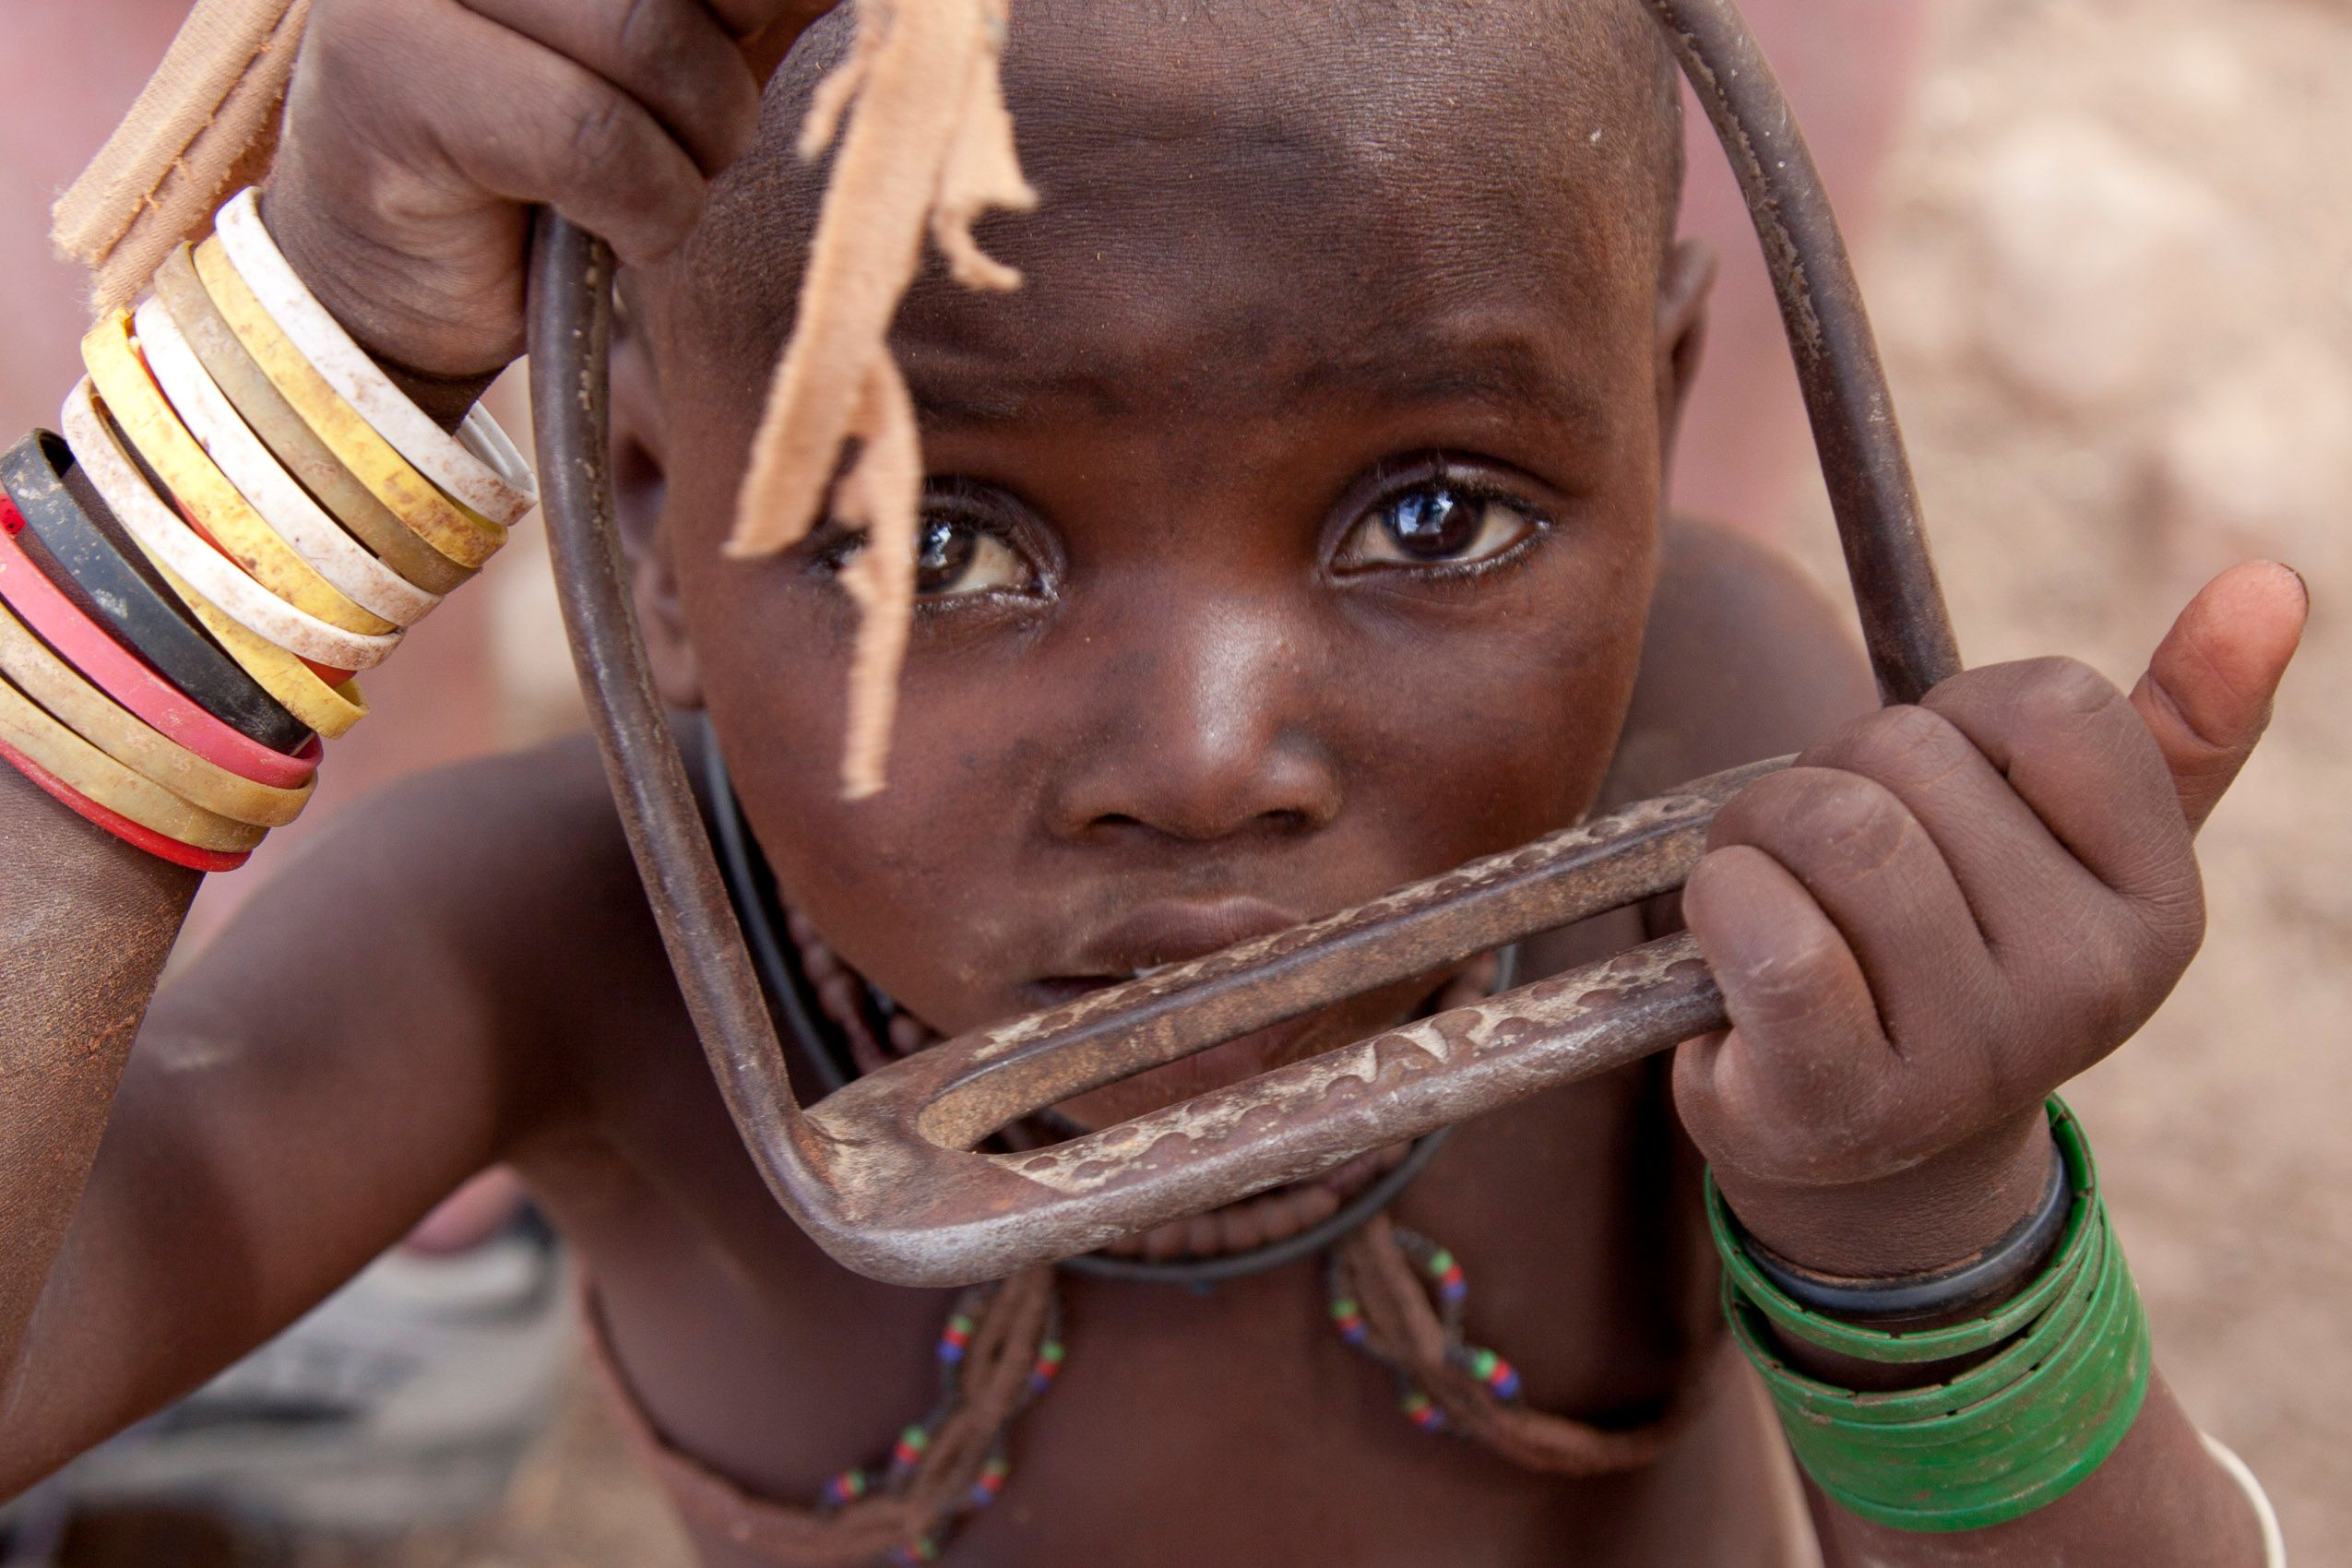 namibia_himba_tribe_child.jpg